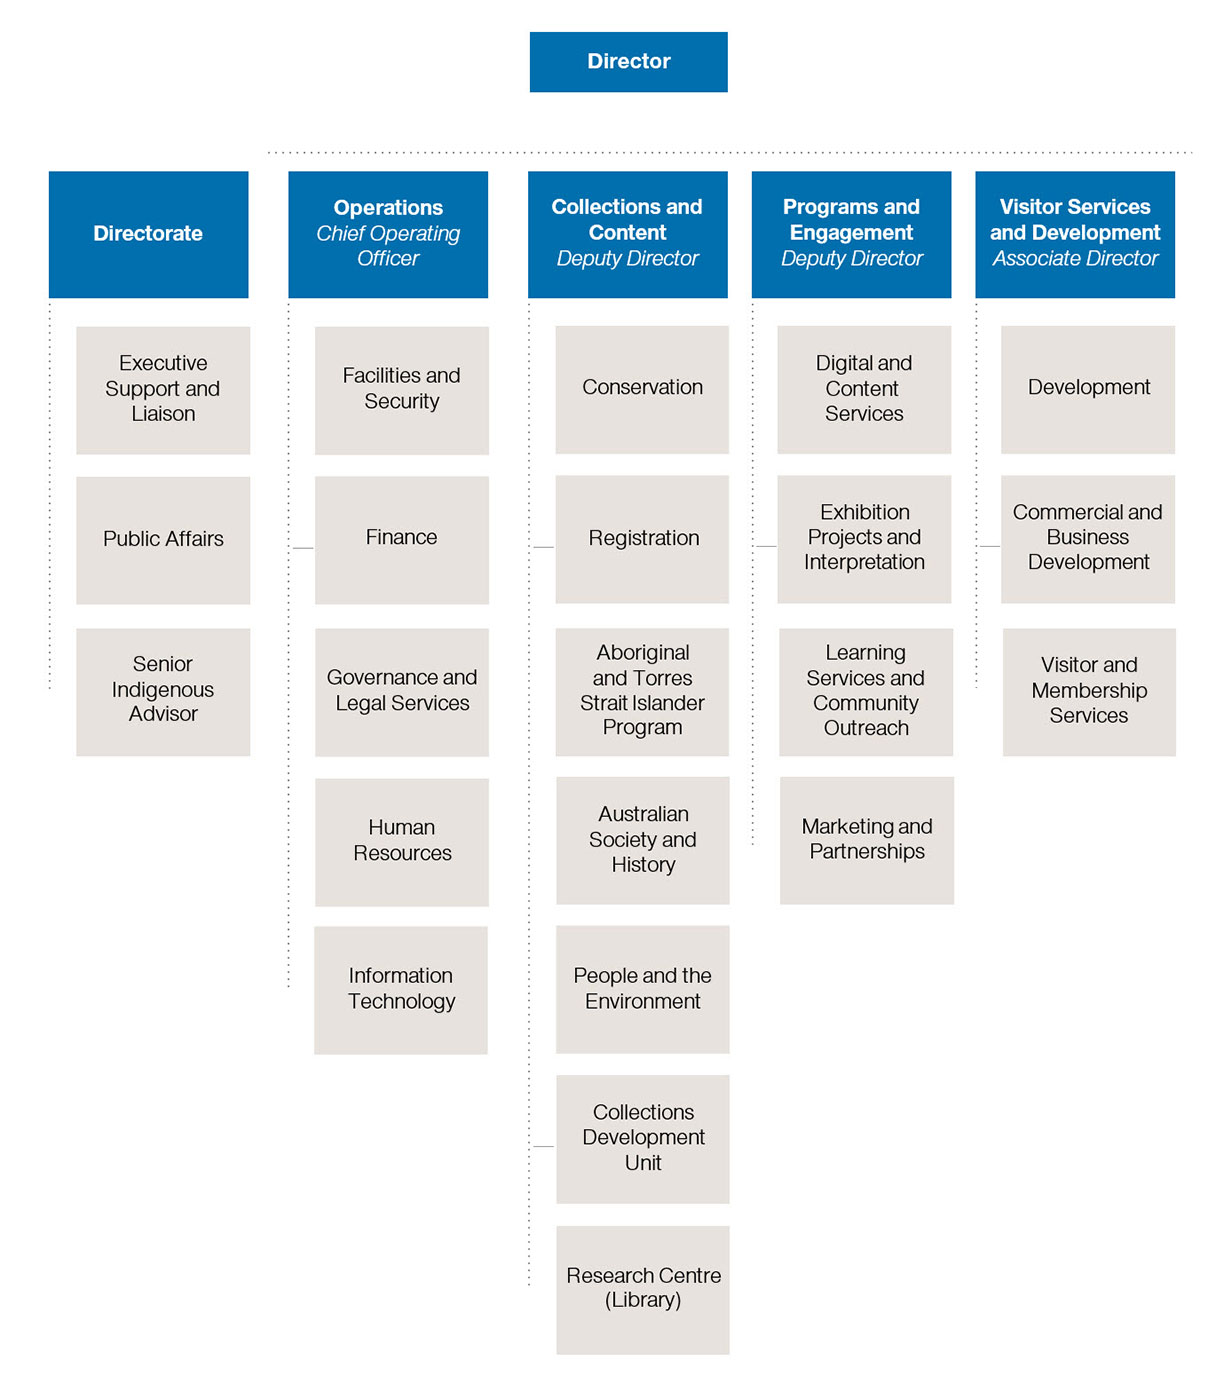 Organisational chart showing 'Director' at top, with five cascading groups underneath (from left): Directorate, Operations, Collections and Content, Programs and Engagement and Visitors Services and Development.